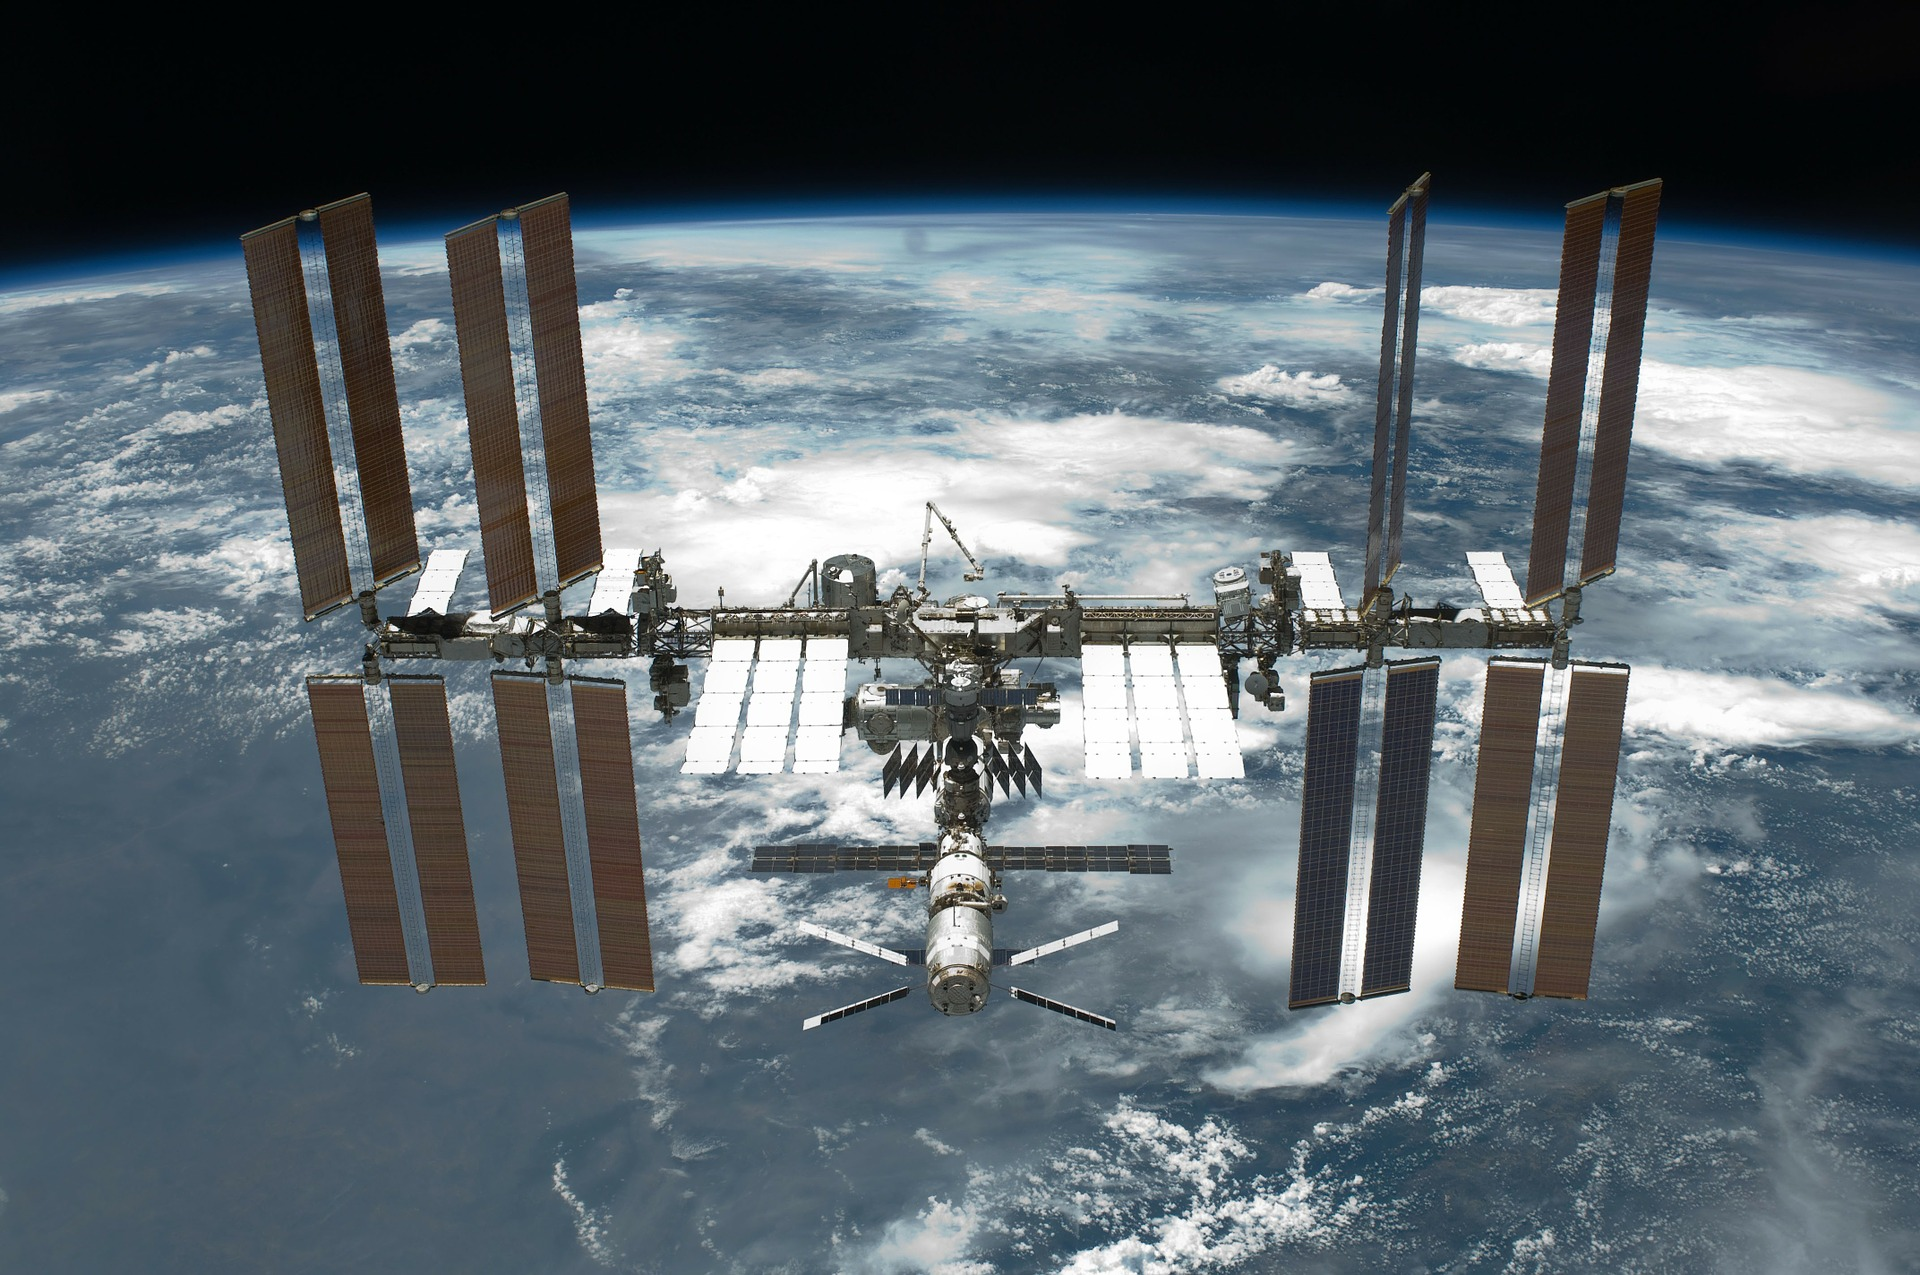 international-space-station-67647_1920.jpg